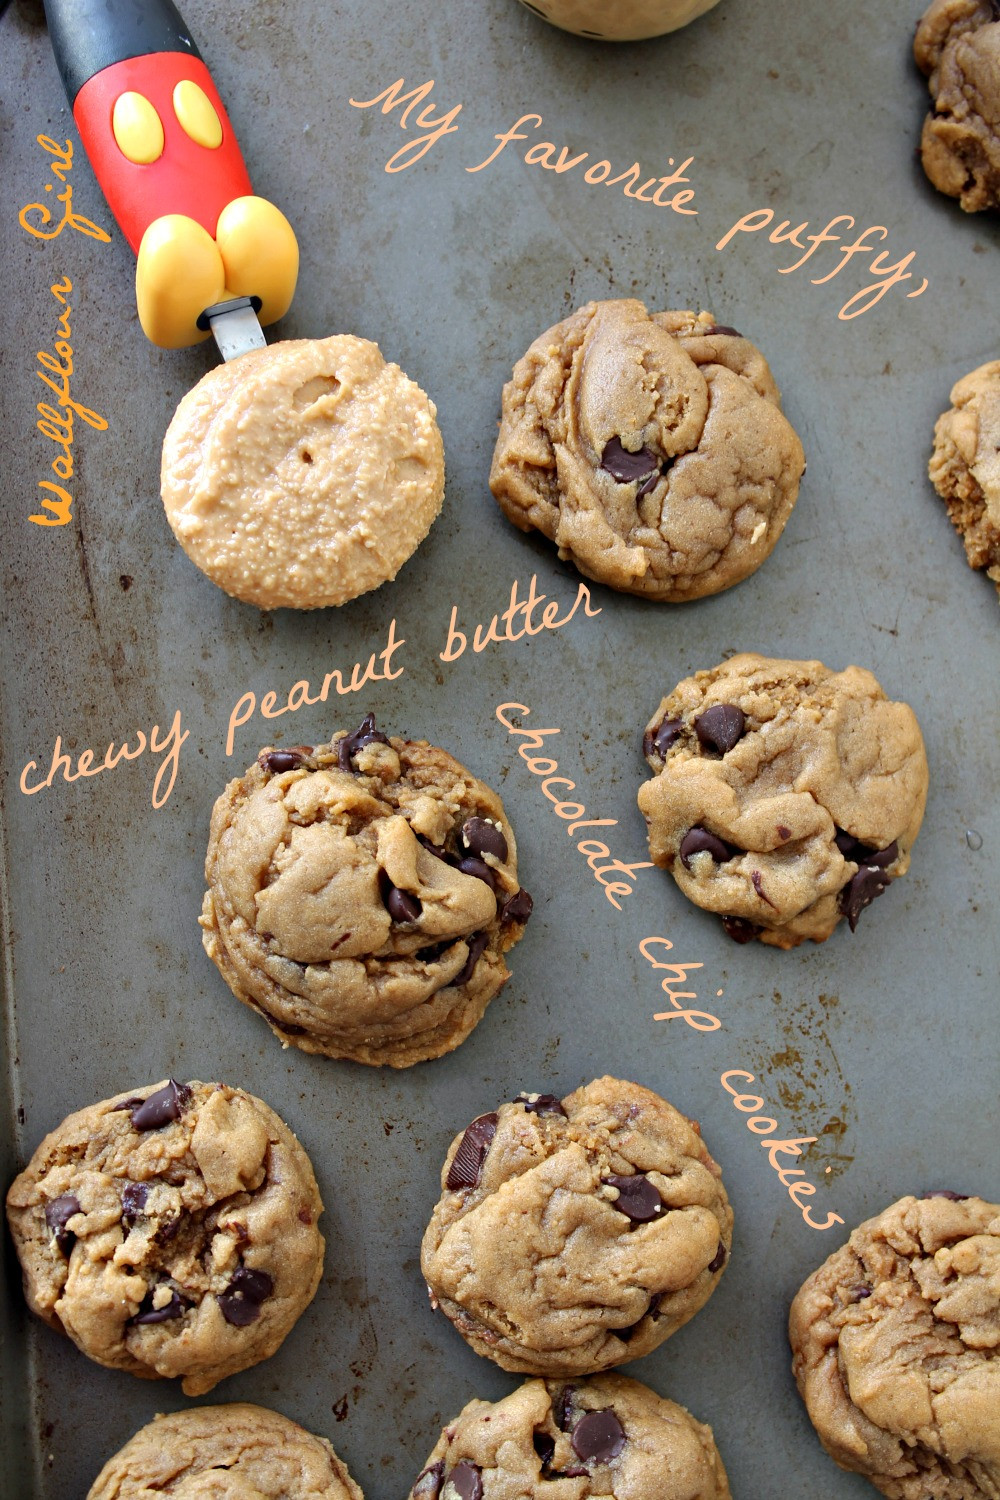 Peanut Butter Cookies With Chocolate Chips  My Favorite Puffy Chewy Peanut Butter Chocolate Chip